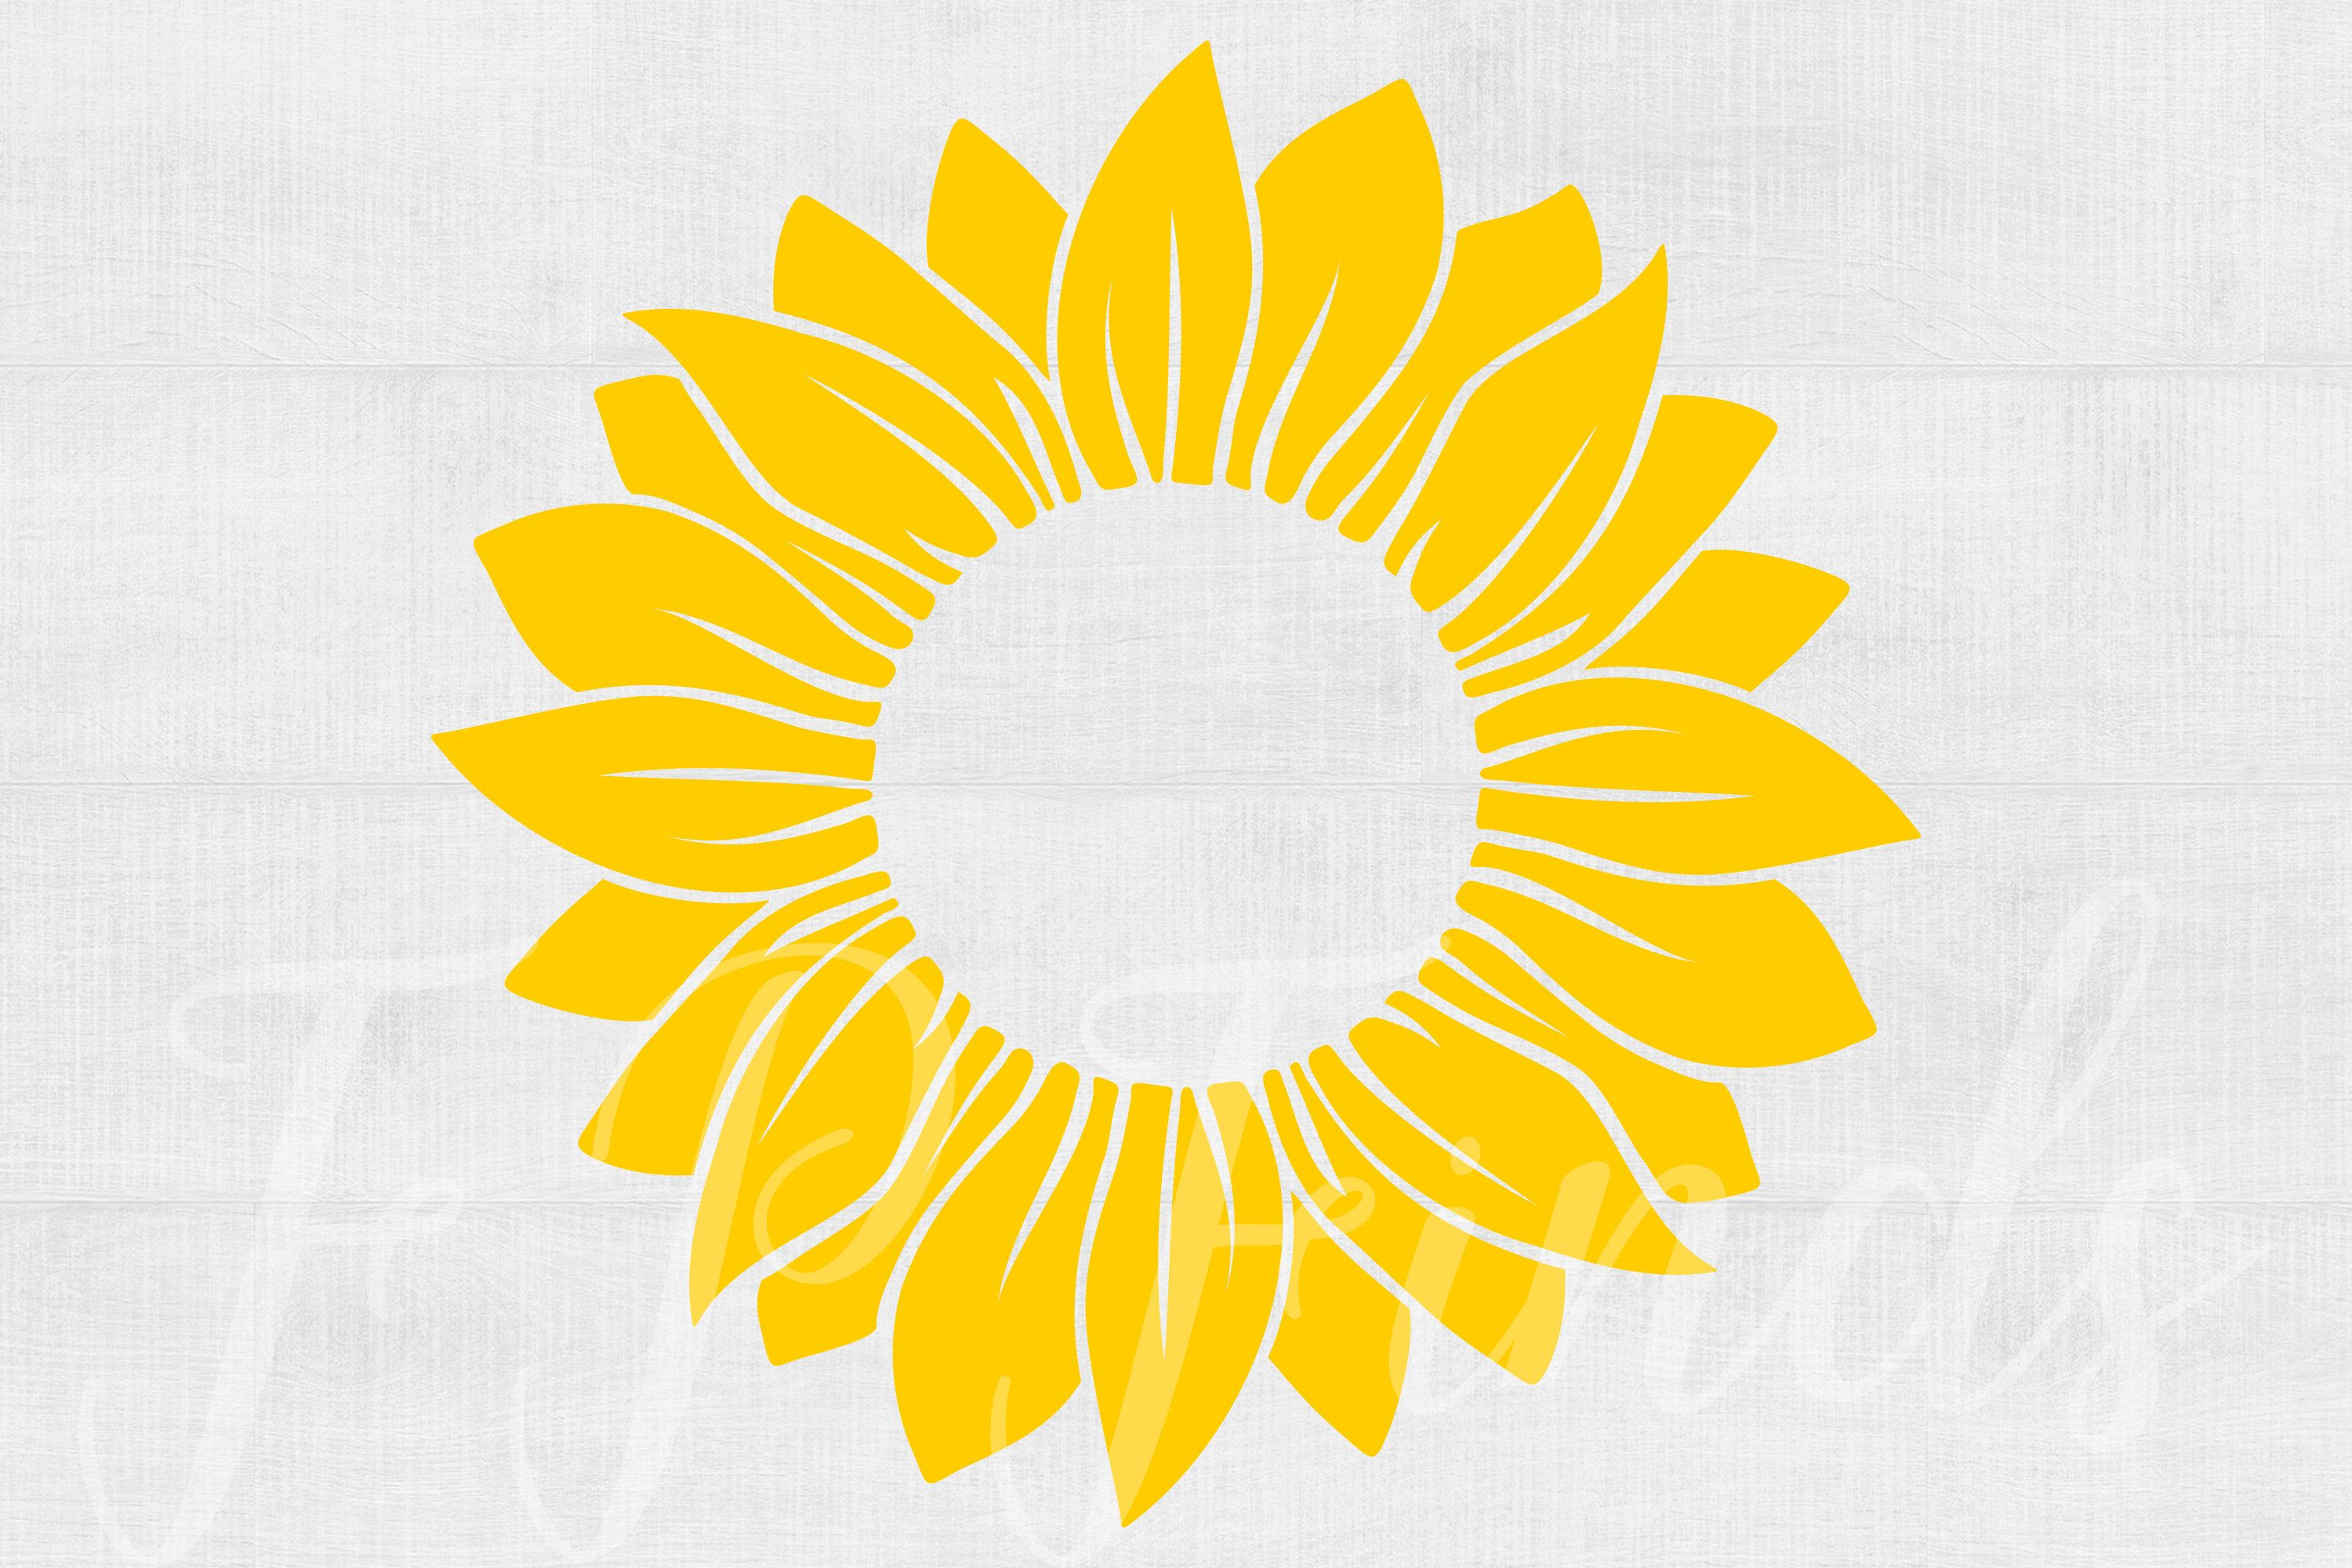 Sunflower Starbucks Svg Flower Starbucks Svg For Tumbler Cup Starbucks Cup Floral Decal Starbucks Decal Venti Tumble In 2020 Flower Svg Sunflower Pictures Floral Decal